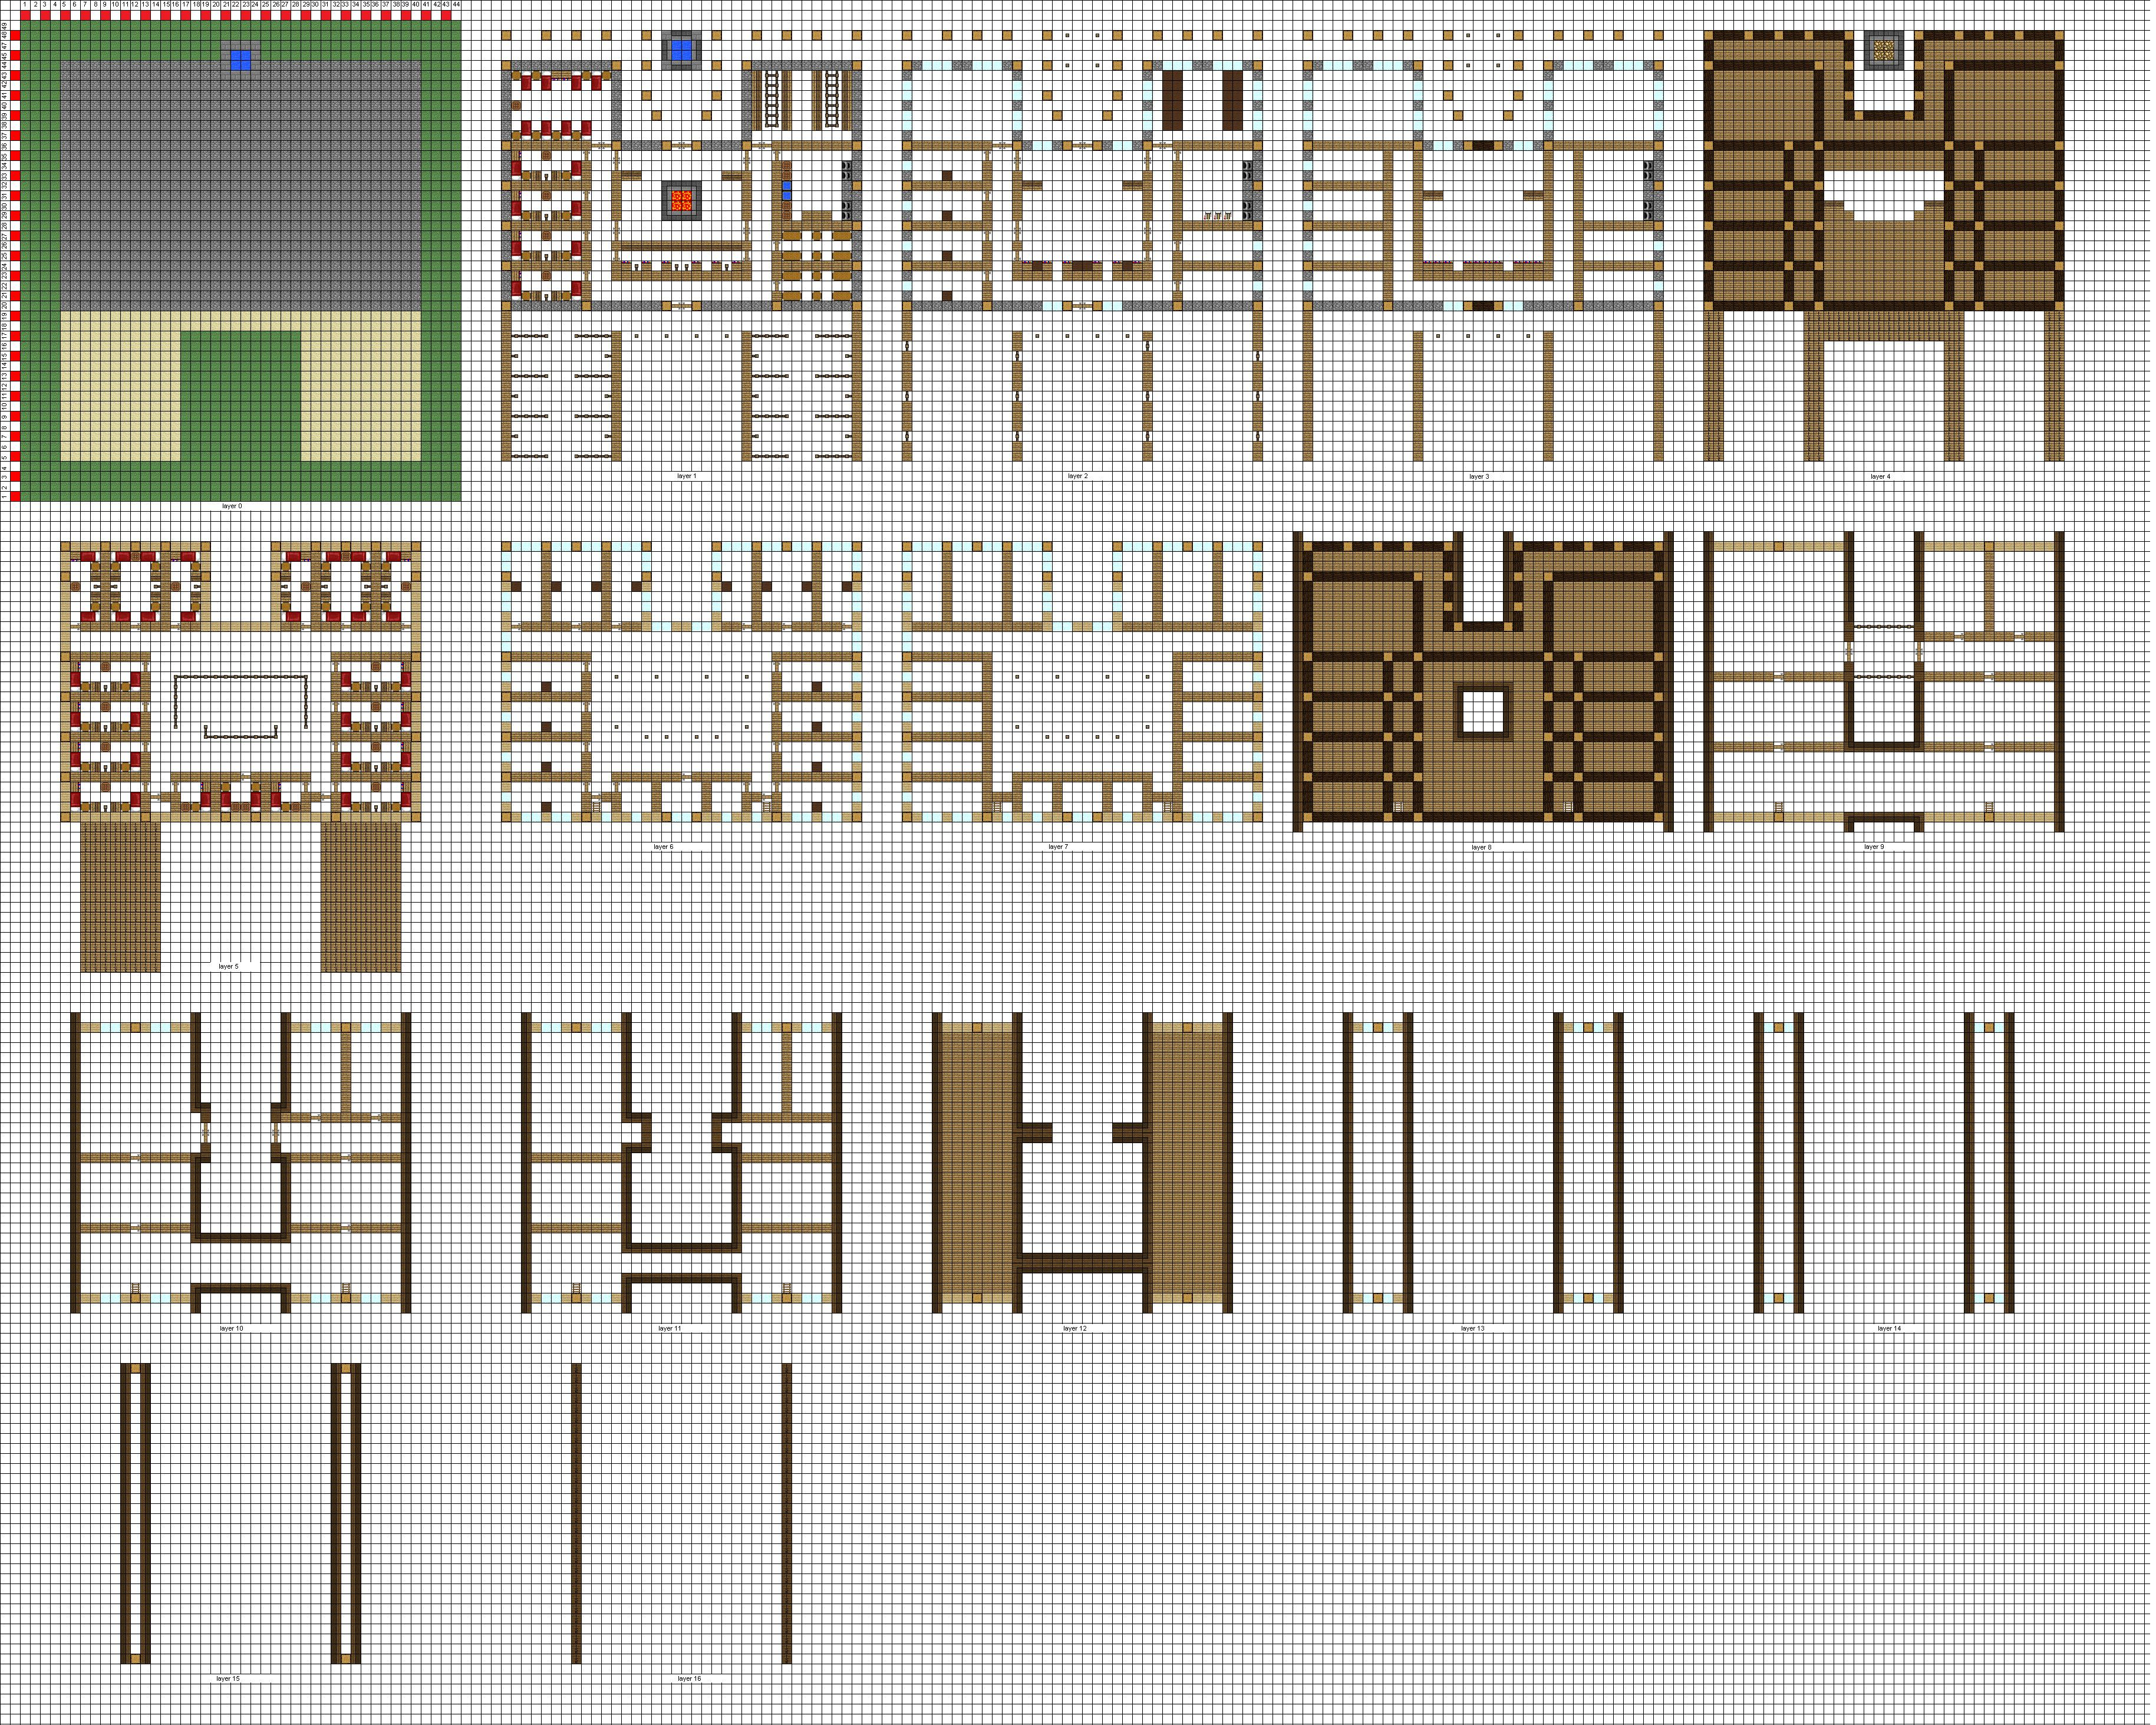 Minecraft large inn floorplans wip by coltcoyote minecraft minecraft large inn floorplans wip by coltcoyote malvernweather Choice Image